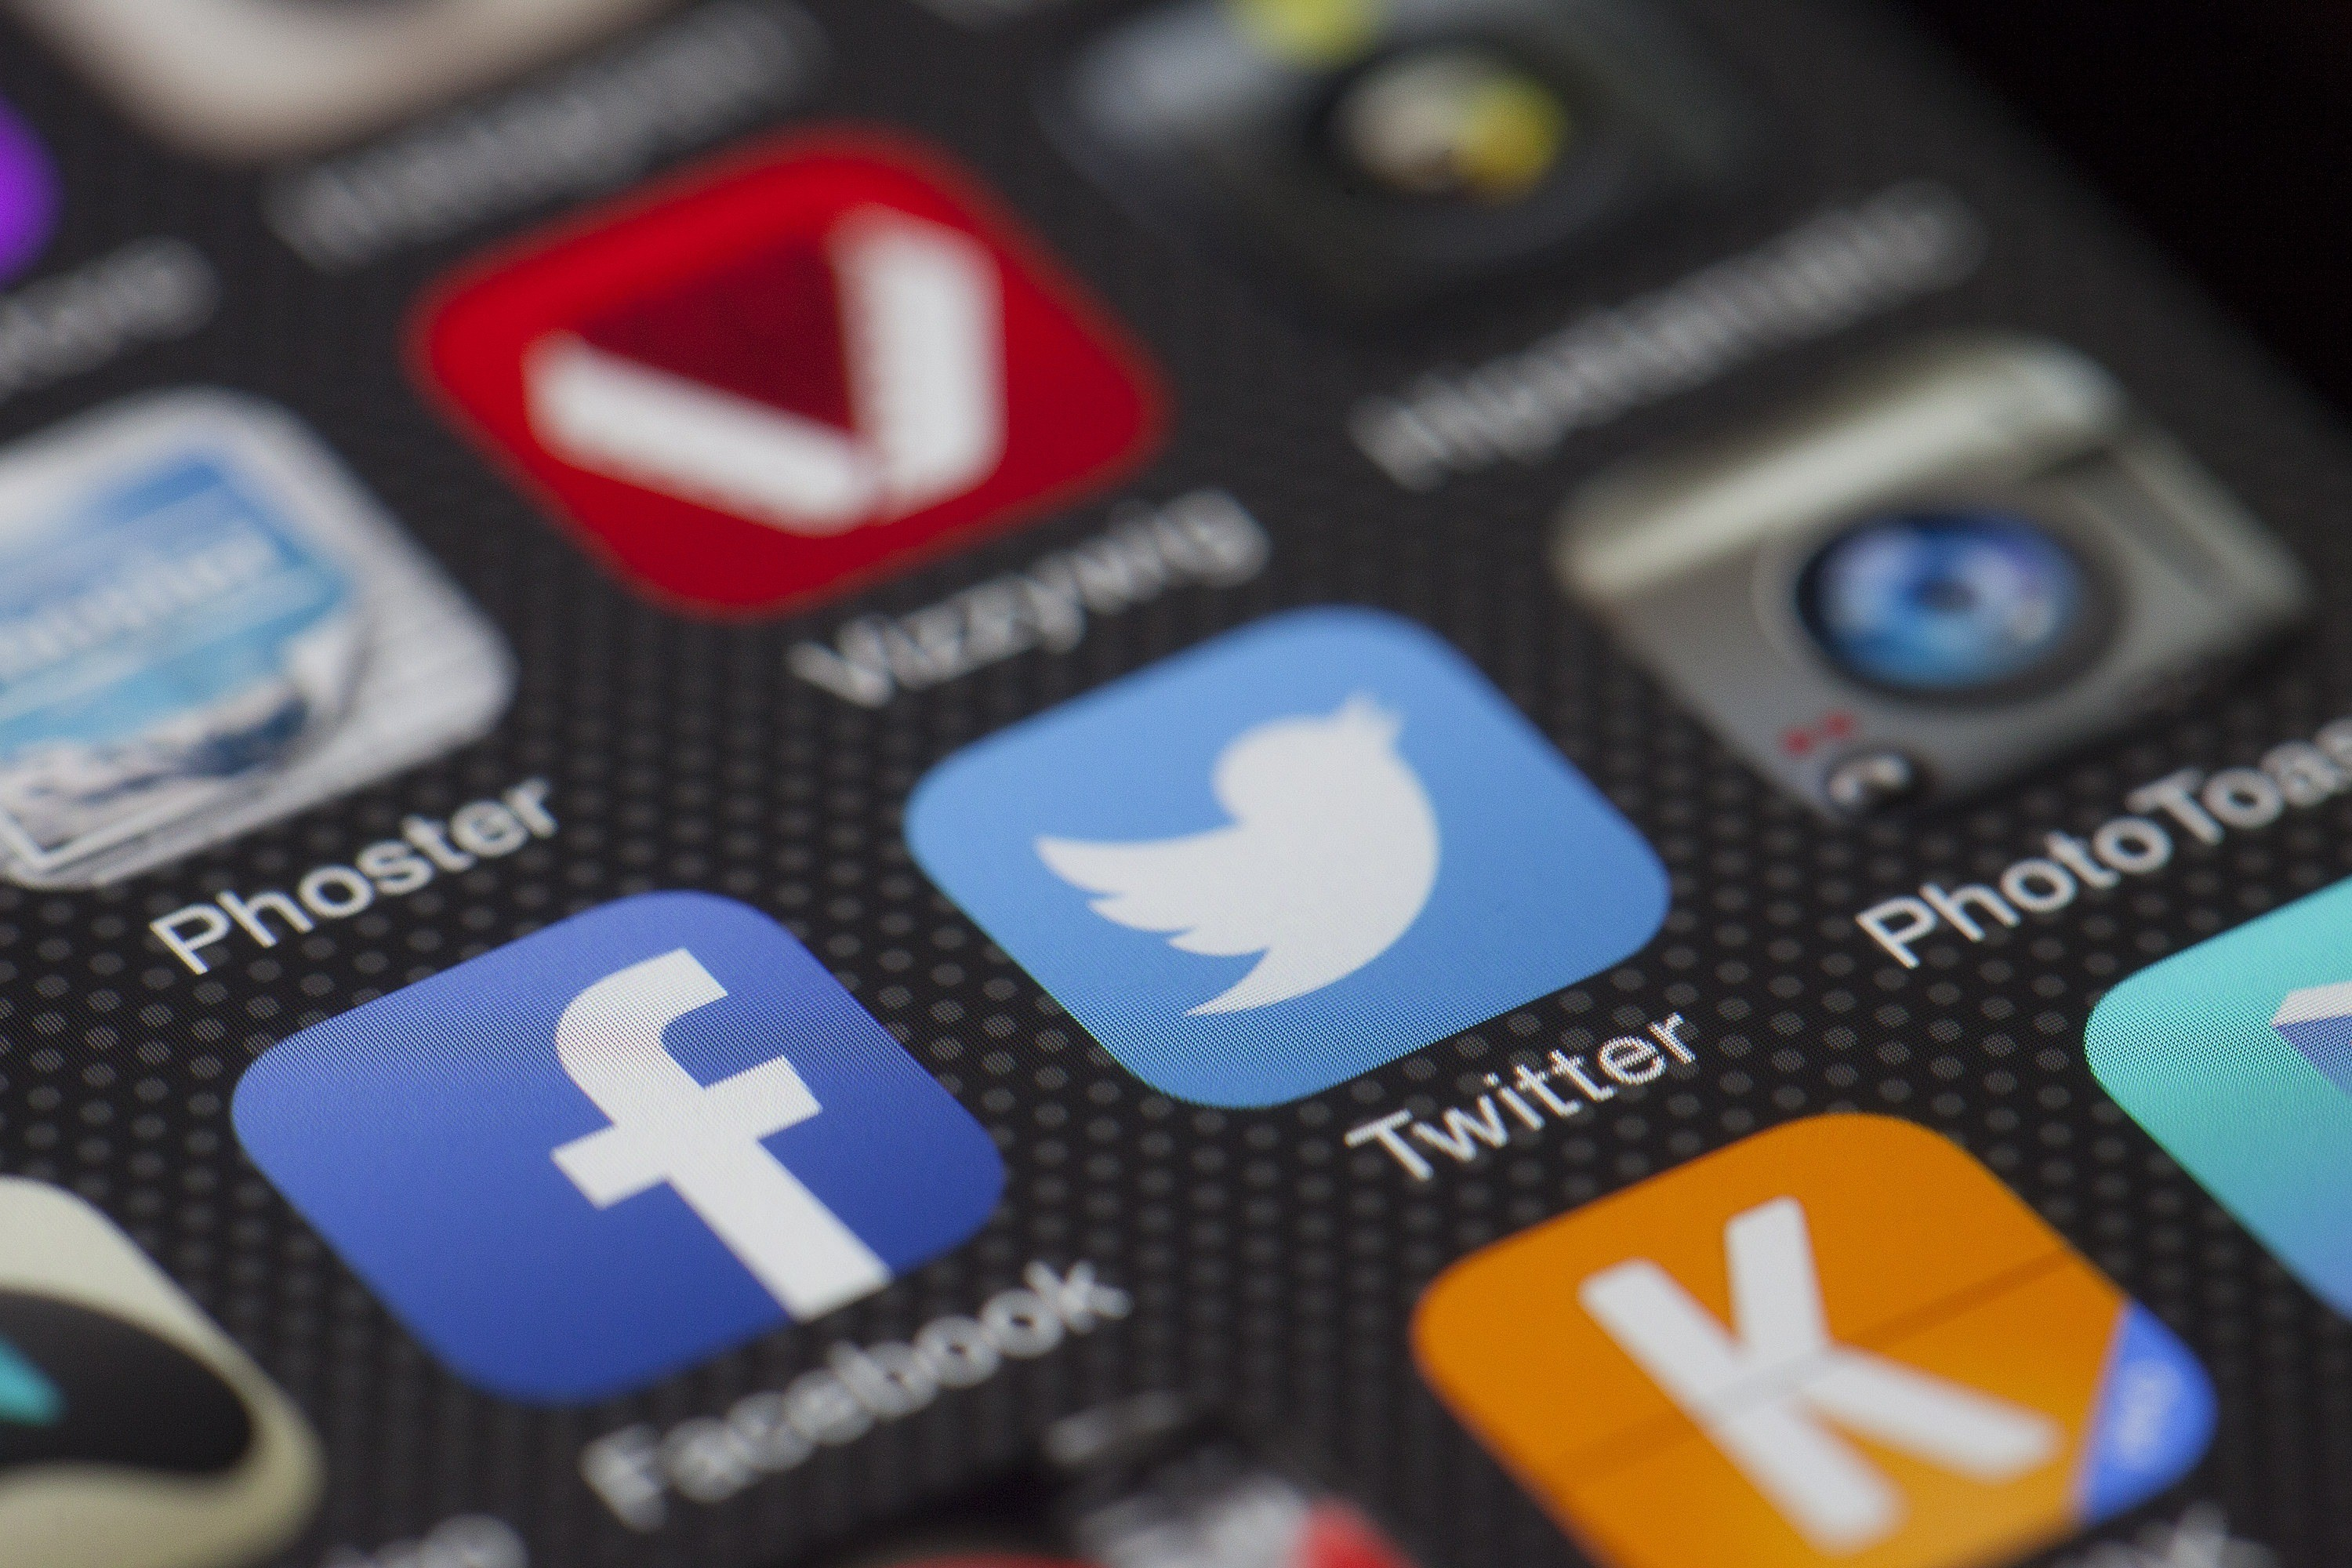 A close up image of a smart phone screen showing social media icons for Facebook, Twitter etc.